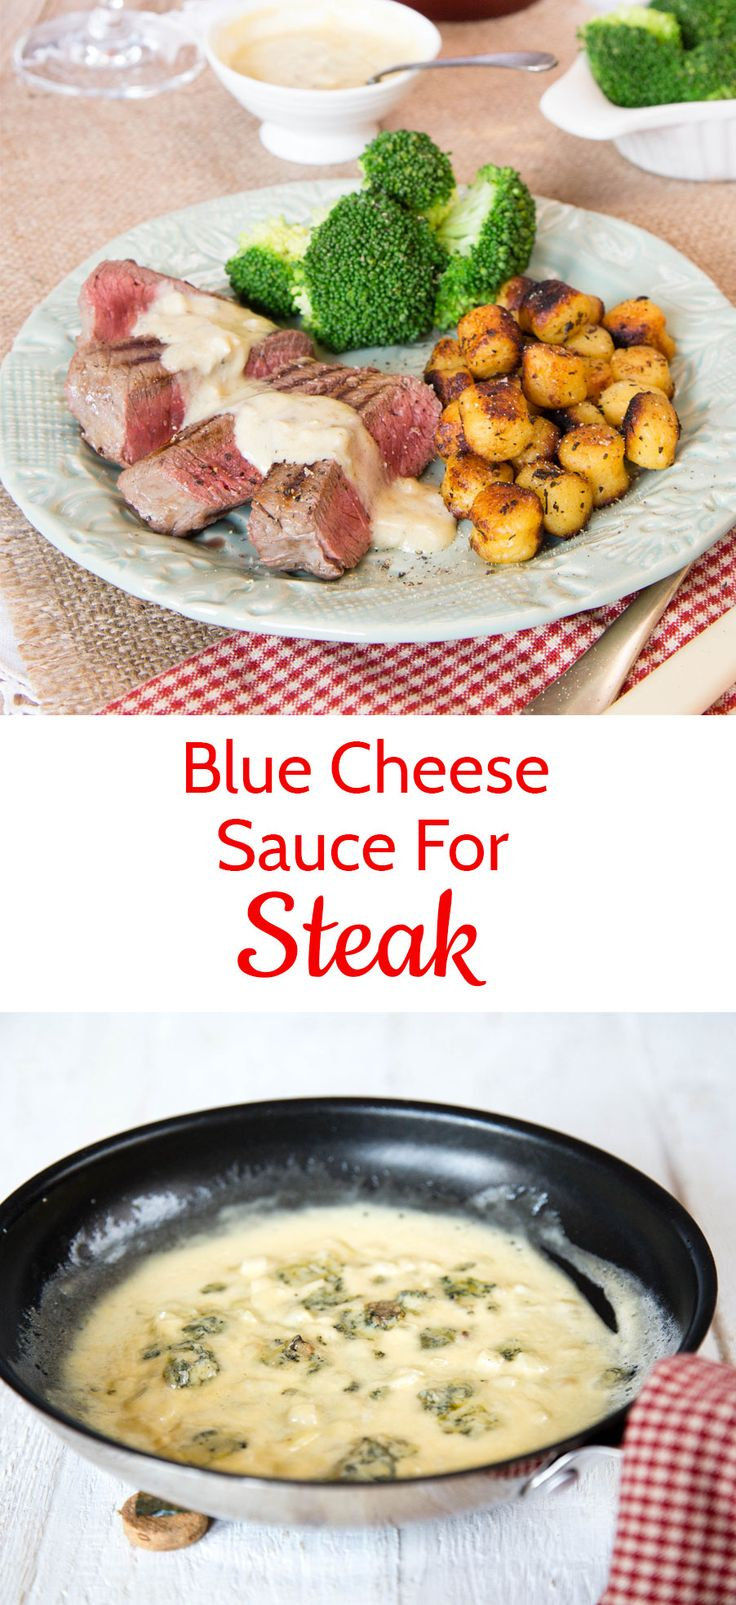 Adding a sauce to a steak turns it into a restaurant quality meal.  Try this Stilton blue cheese steak sauce next time you have steak.